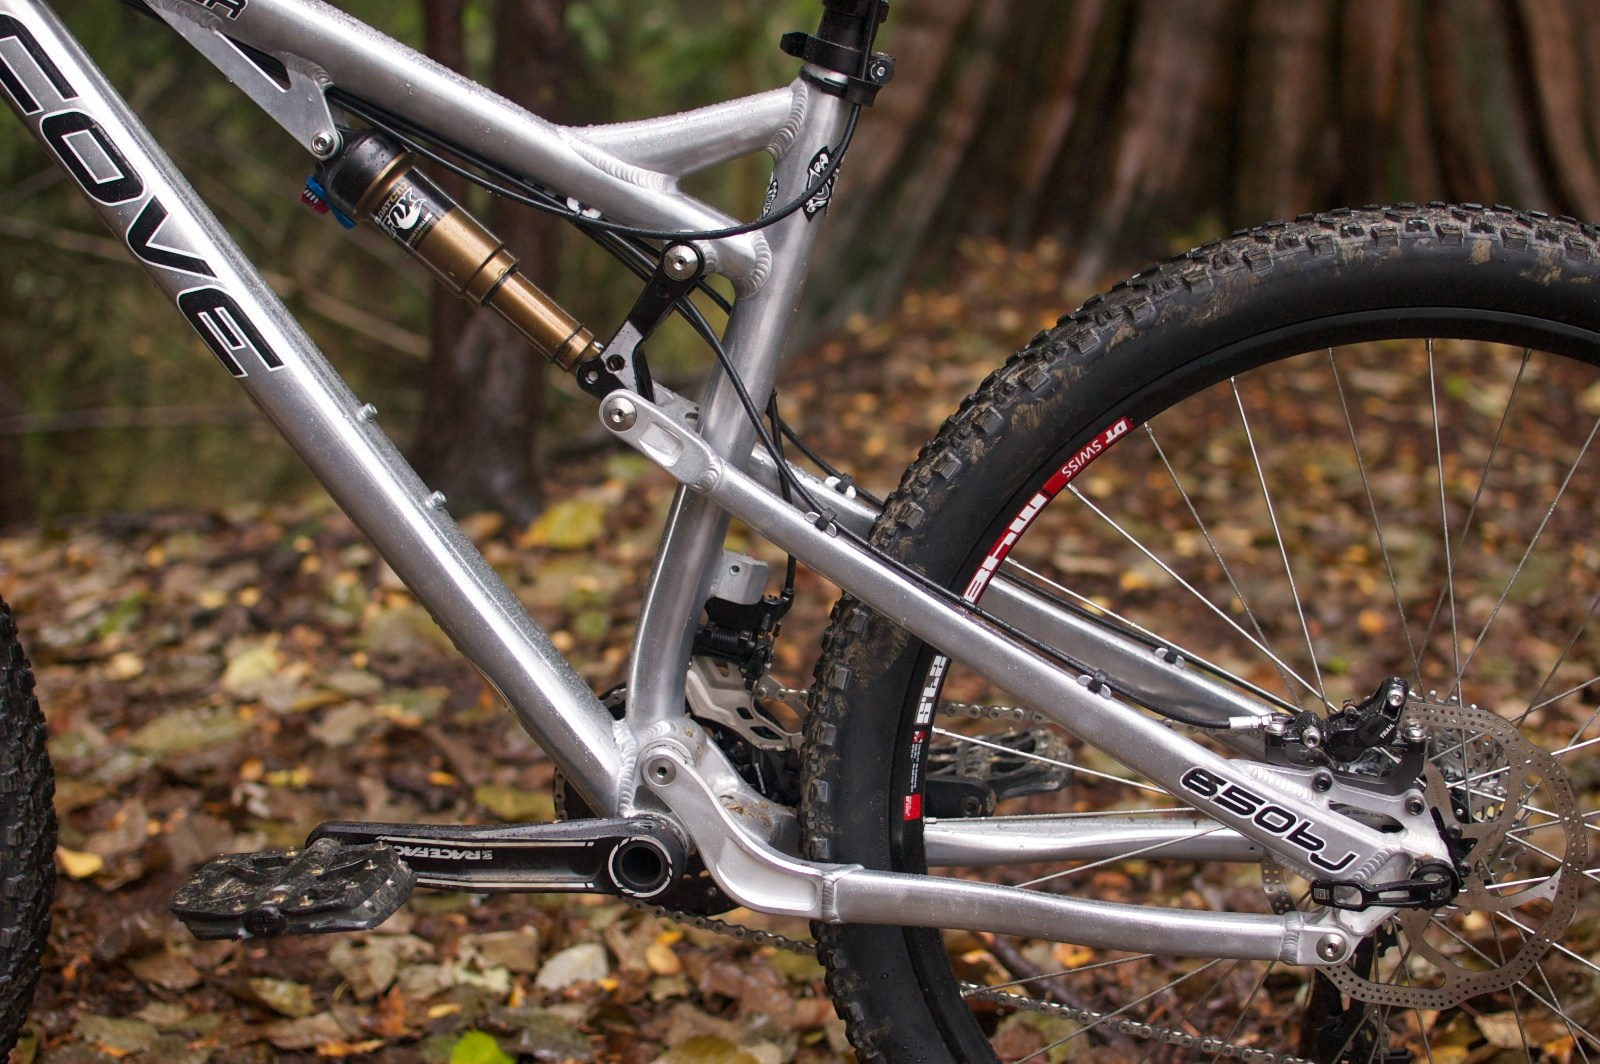 Cove Bikes, Hummer 650B, North Shore, Test Bike, First Look, Cove, Bikes, Hustler, 650B, Review, Photos